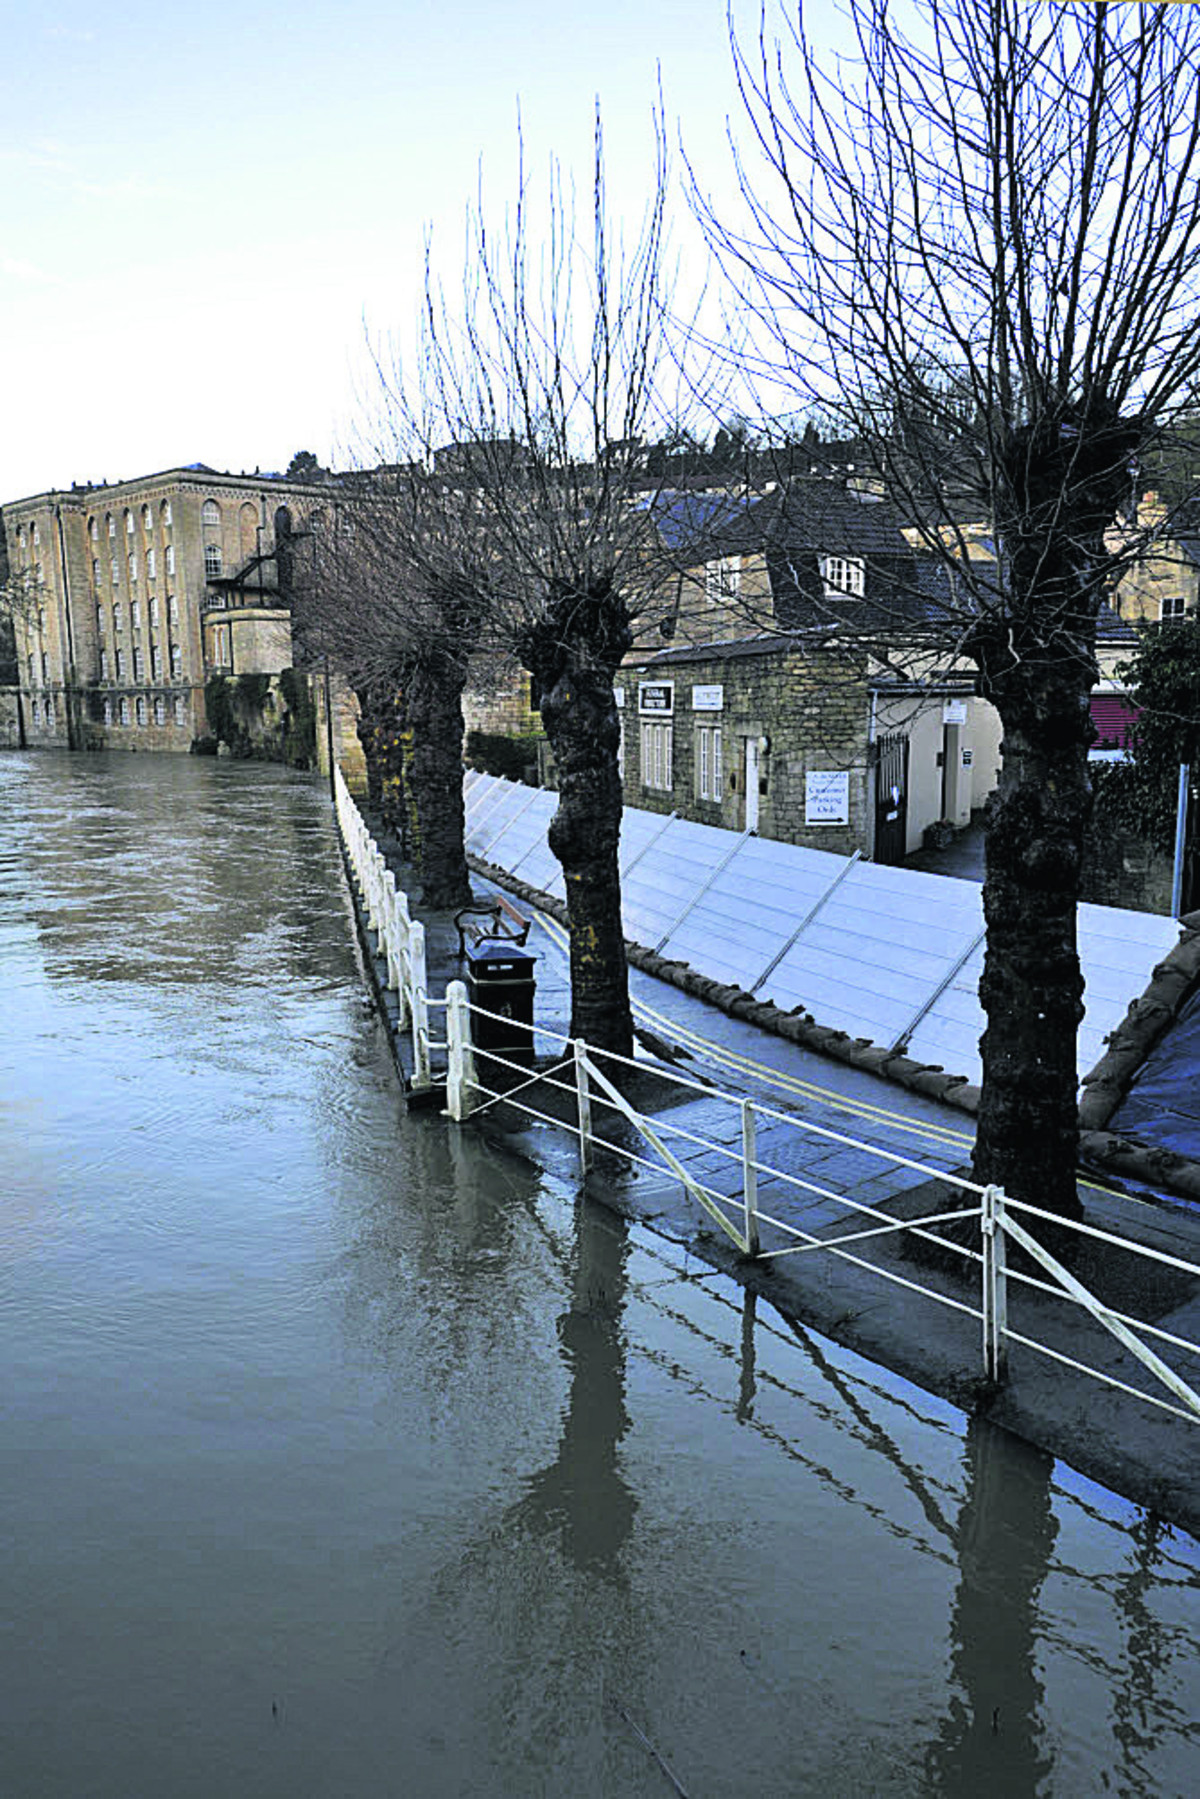 Flood defences in place at Bradford on Avon as Wiltshire stays on alert